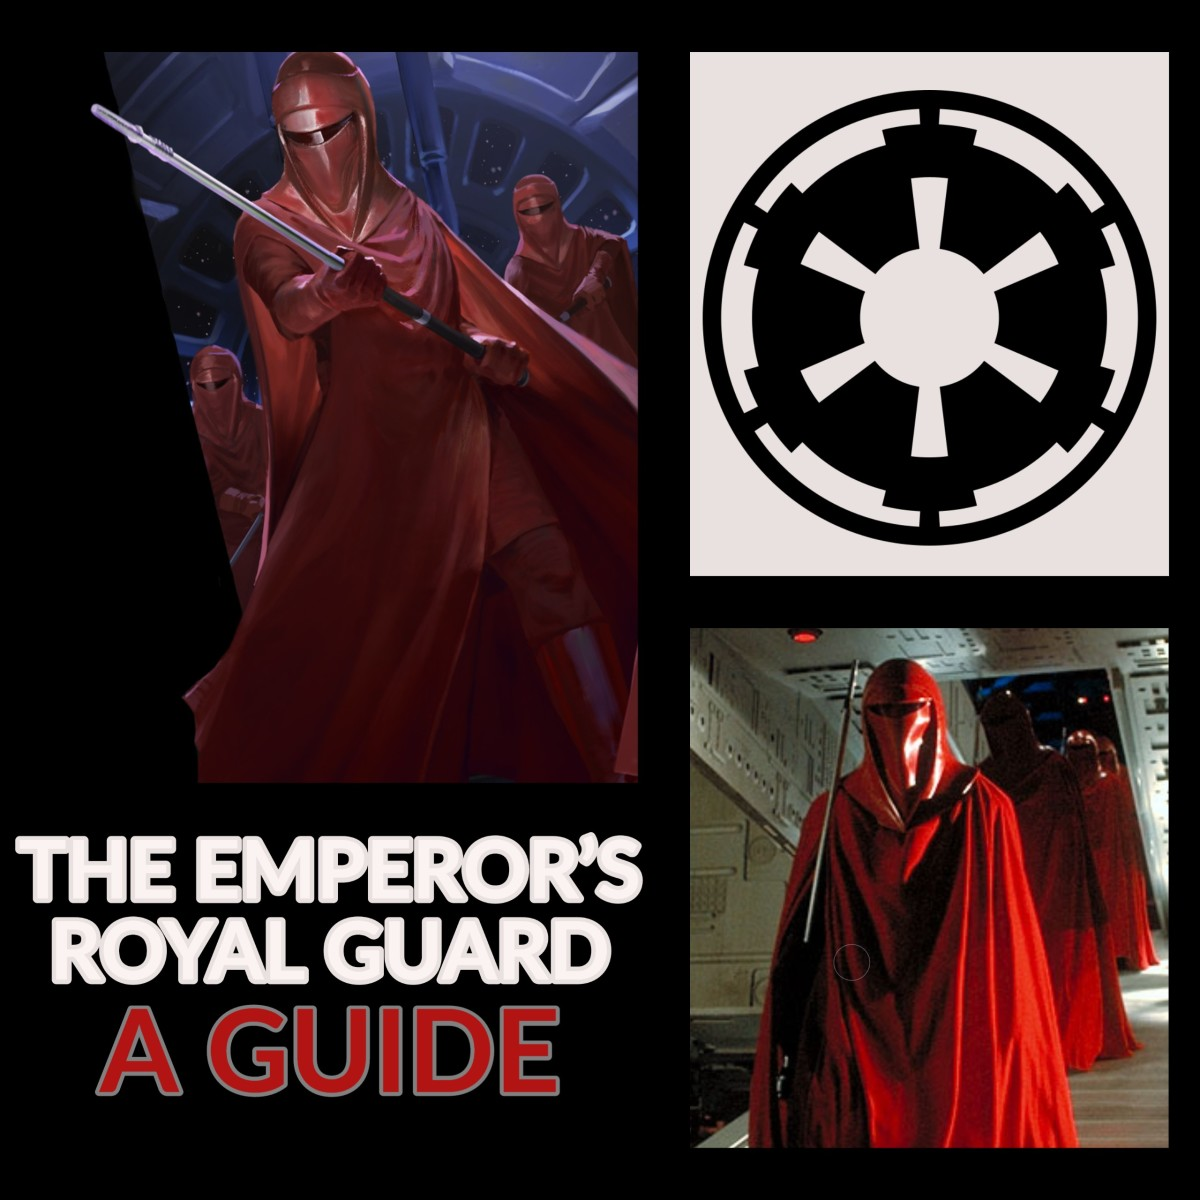 From Shadow Guards to Sovereign Protectors, this article examines each of the royal guard variants that are present within the Star Wars universe.